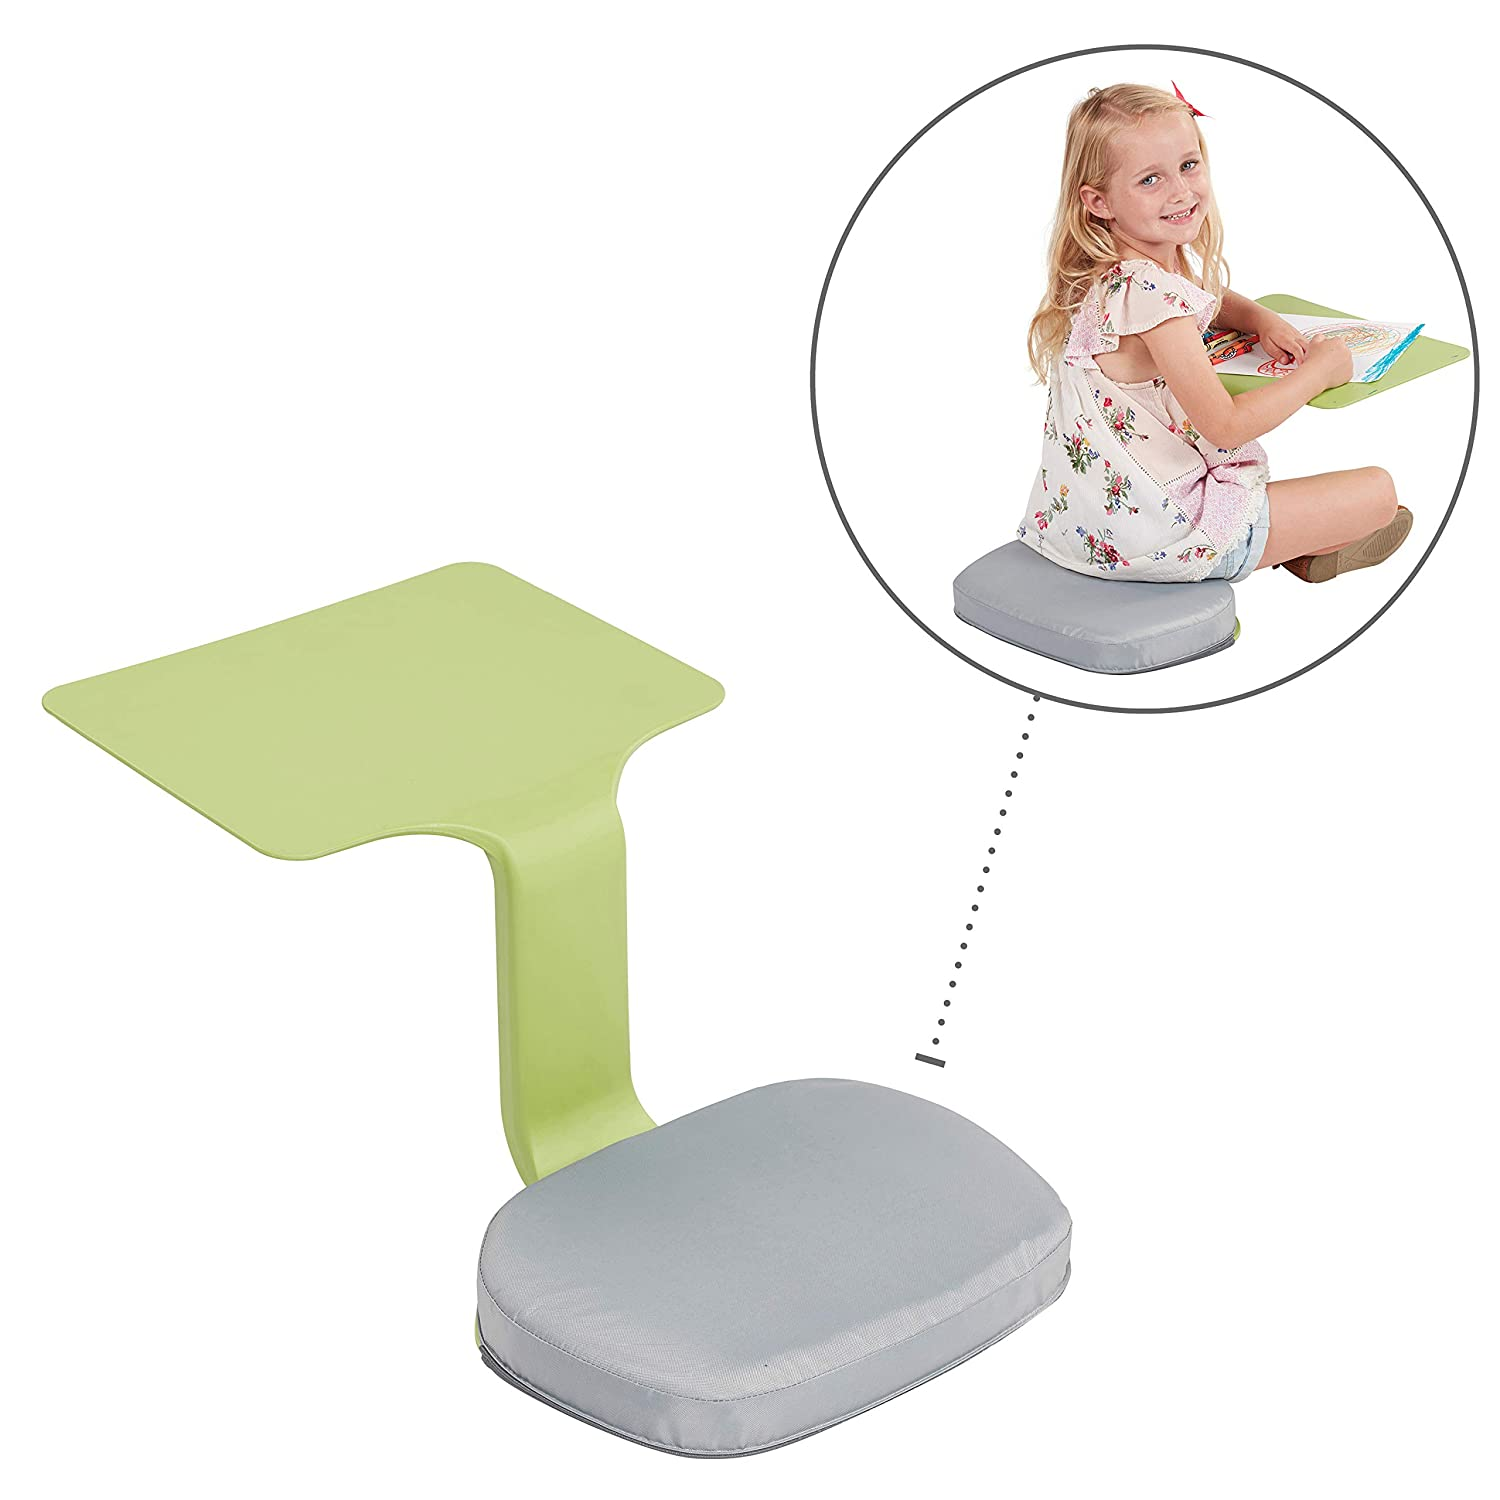 ECR4Kids Surf Cushion – Added Seat Cushion for The Surf Portable Lap Desk Laptop Stand Writing Table, Gray, Grey